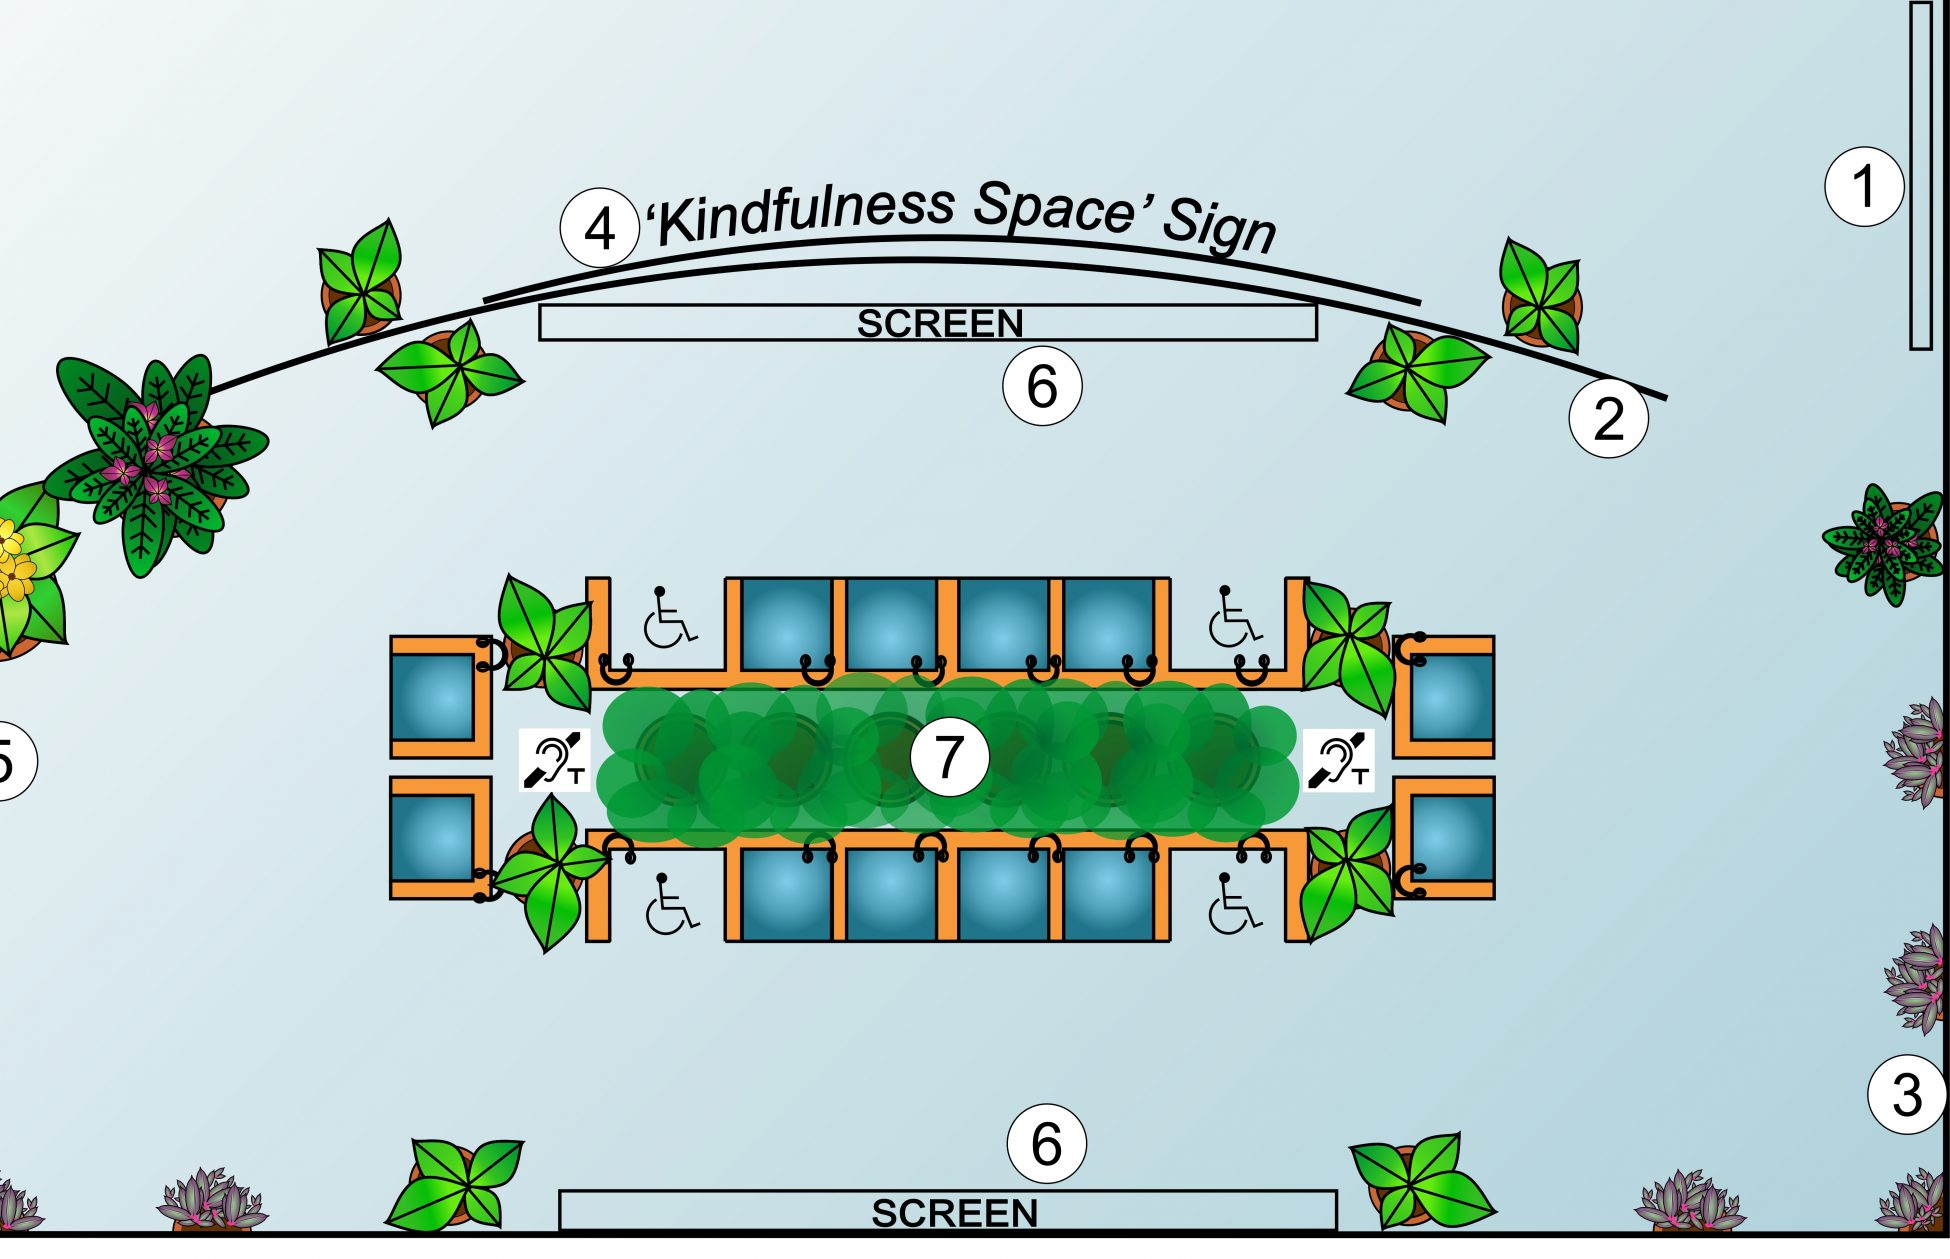 A digital aerial design of a kindfulness space. There are potted plants around the edge and blue chairs in the middle with symbols for headphones, wheelchair spaces and hearing loops.